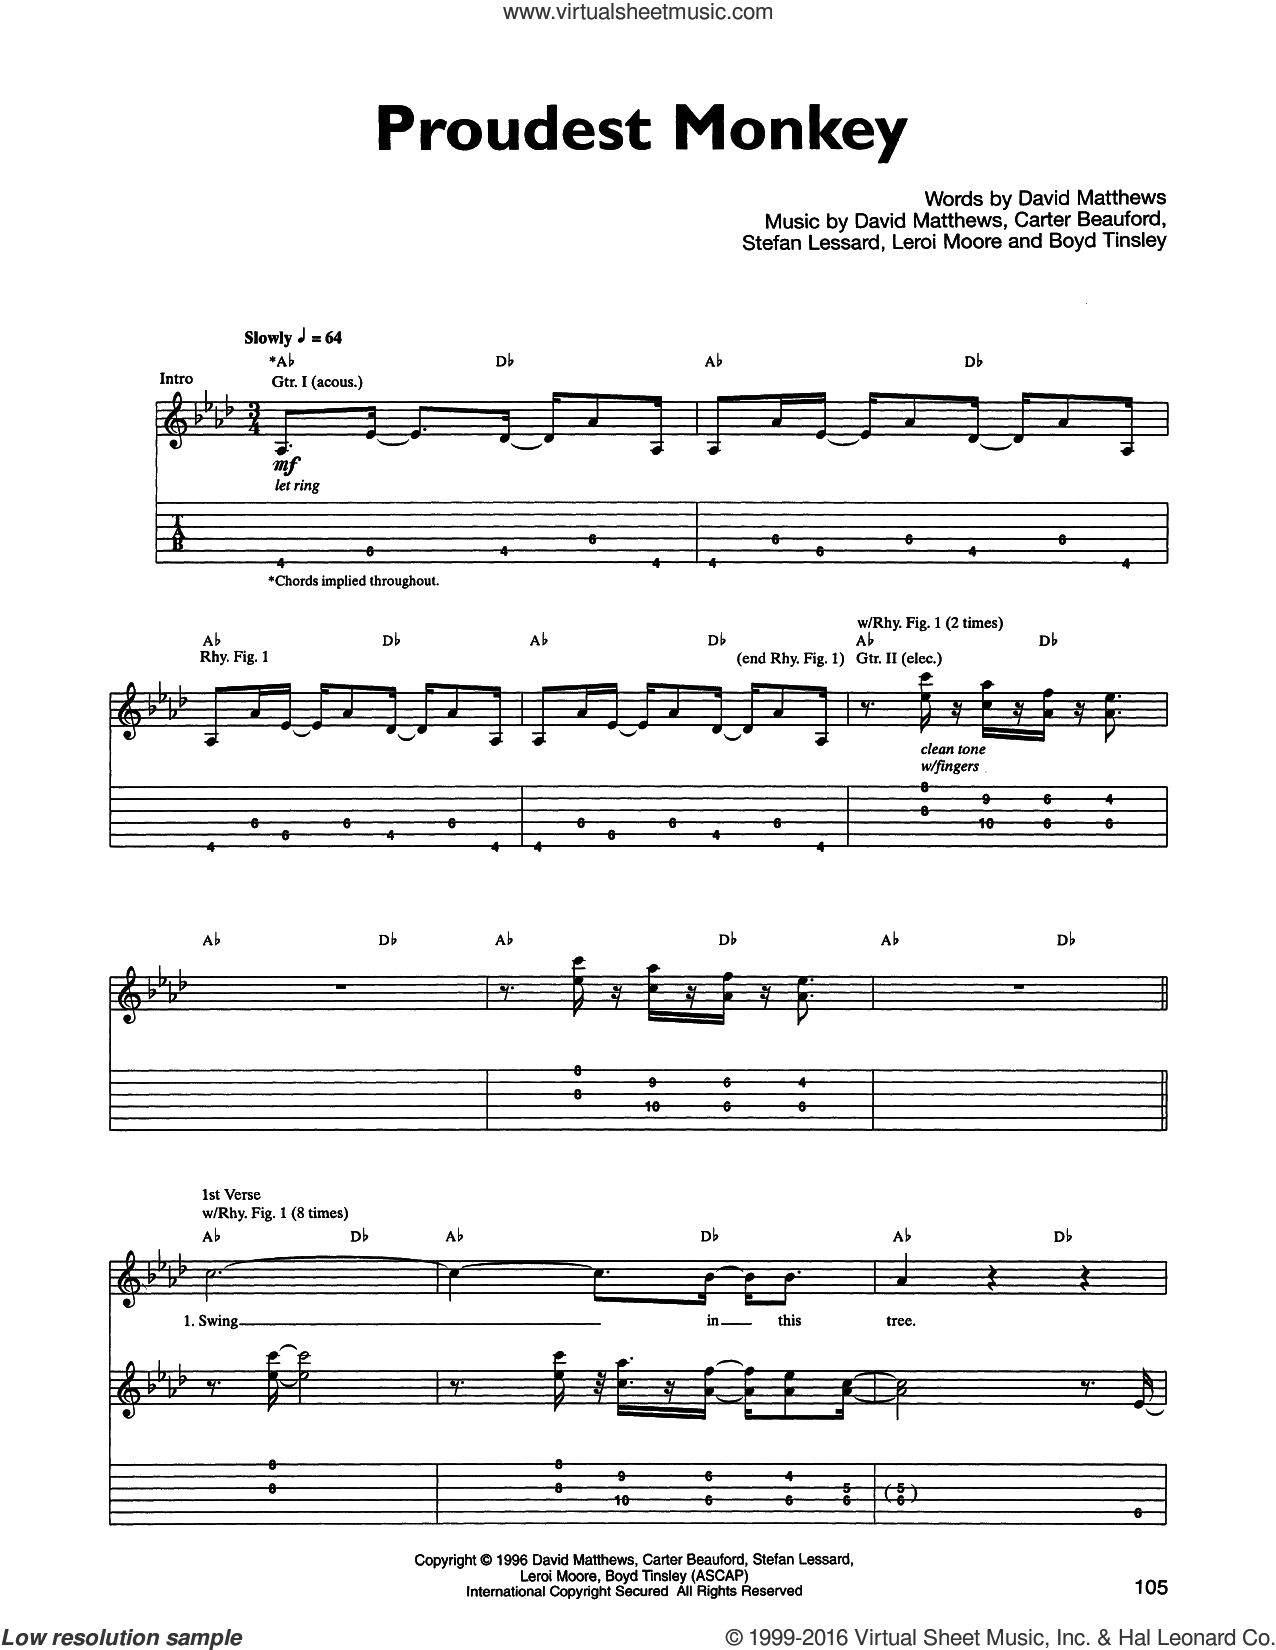 Proudest Monkey sheet music for guitar (tablature) by Dave Matthews Band. Score Image Preview.